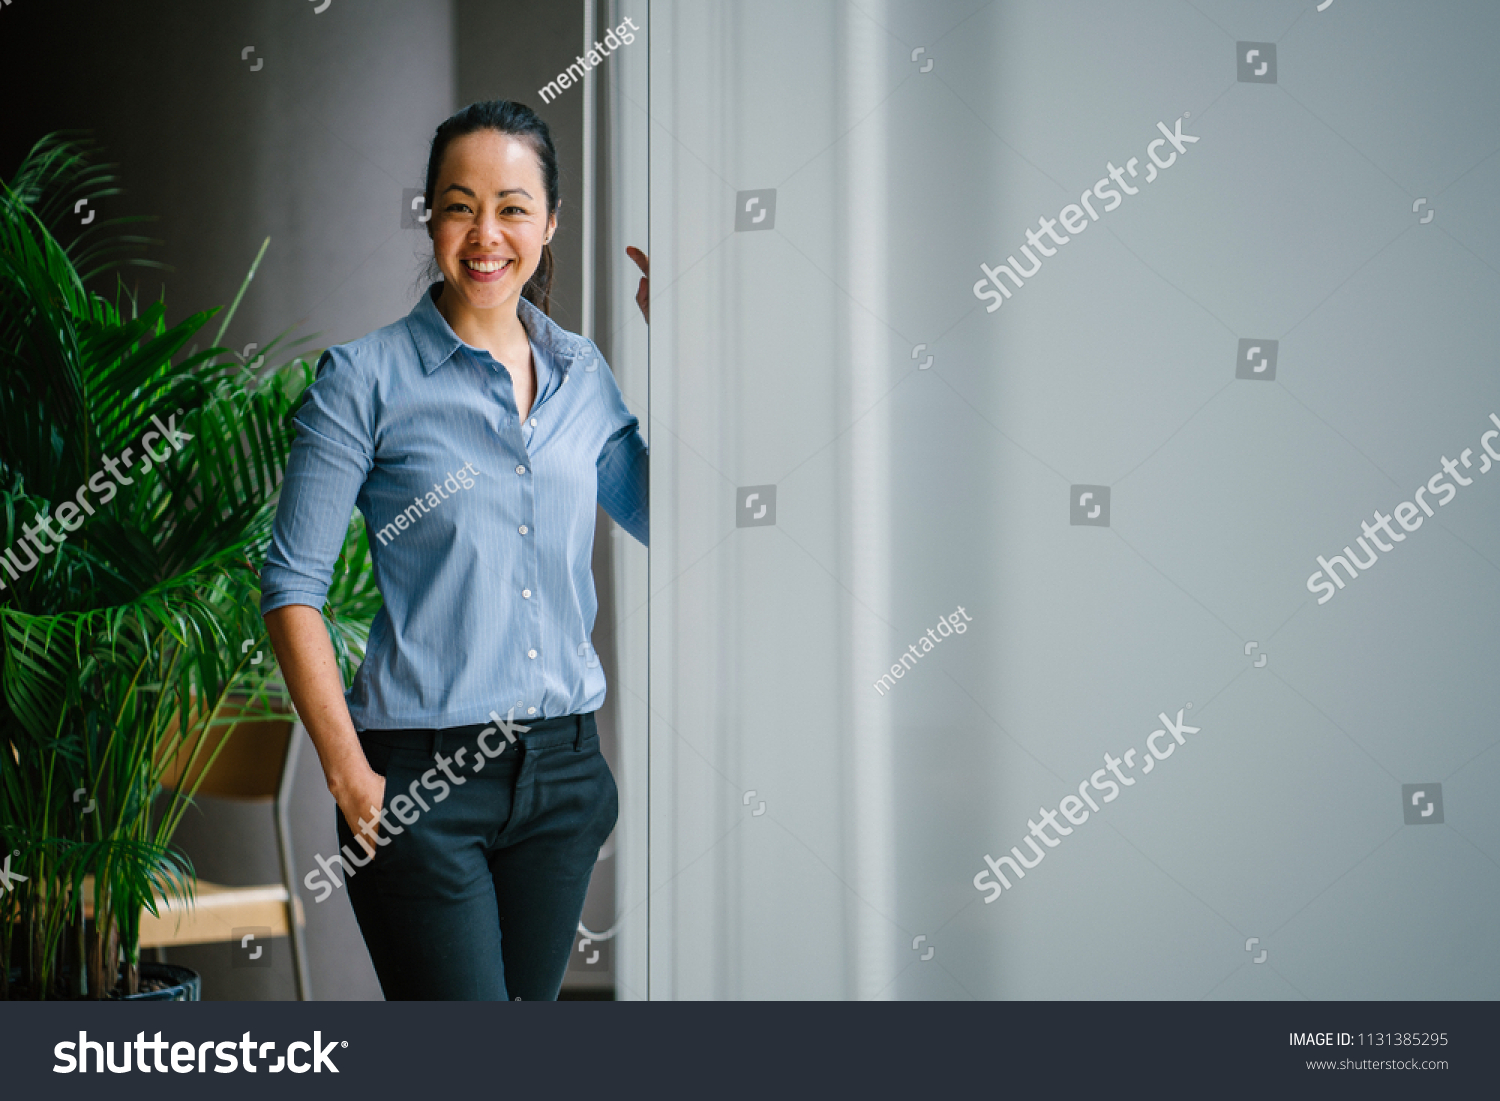 Portrait of a young, attractive and confident Chinese Asian business woman in a meeting room during the day. She is standing by the glass windows and smiling as she leans on the window ledge.  #1131385295